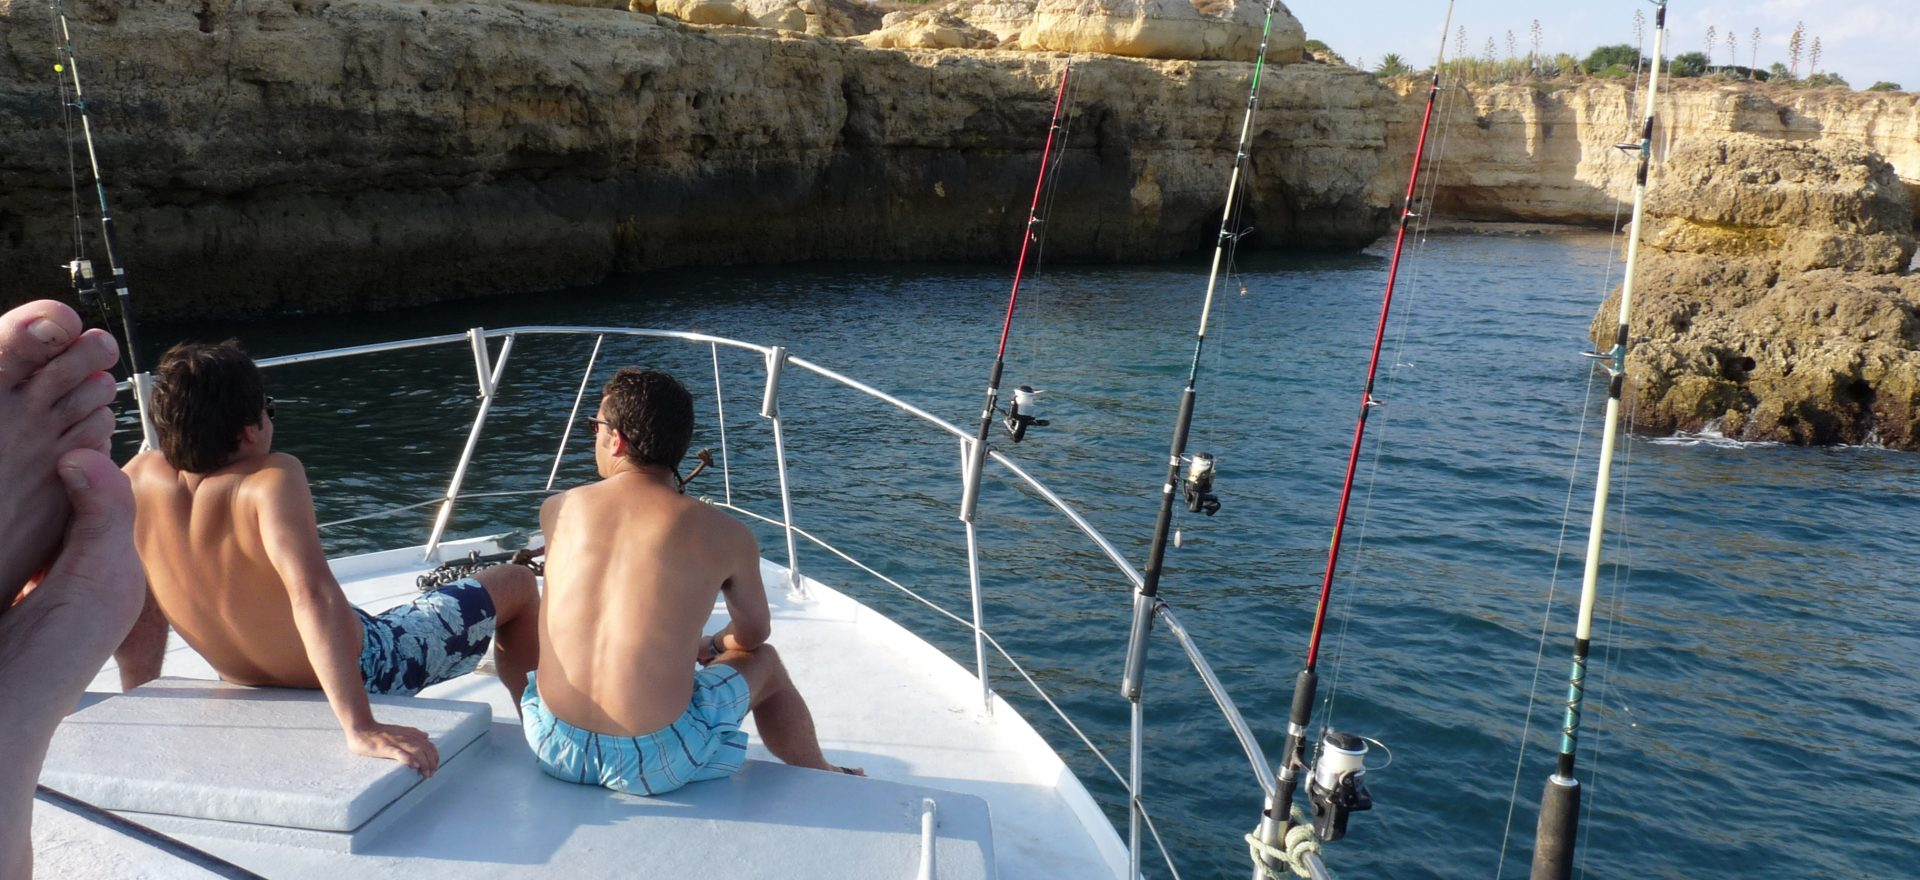 vilamoura fishing fun groups activities